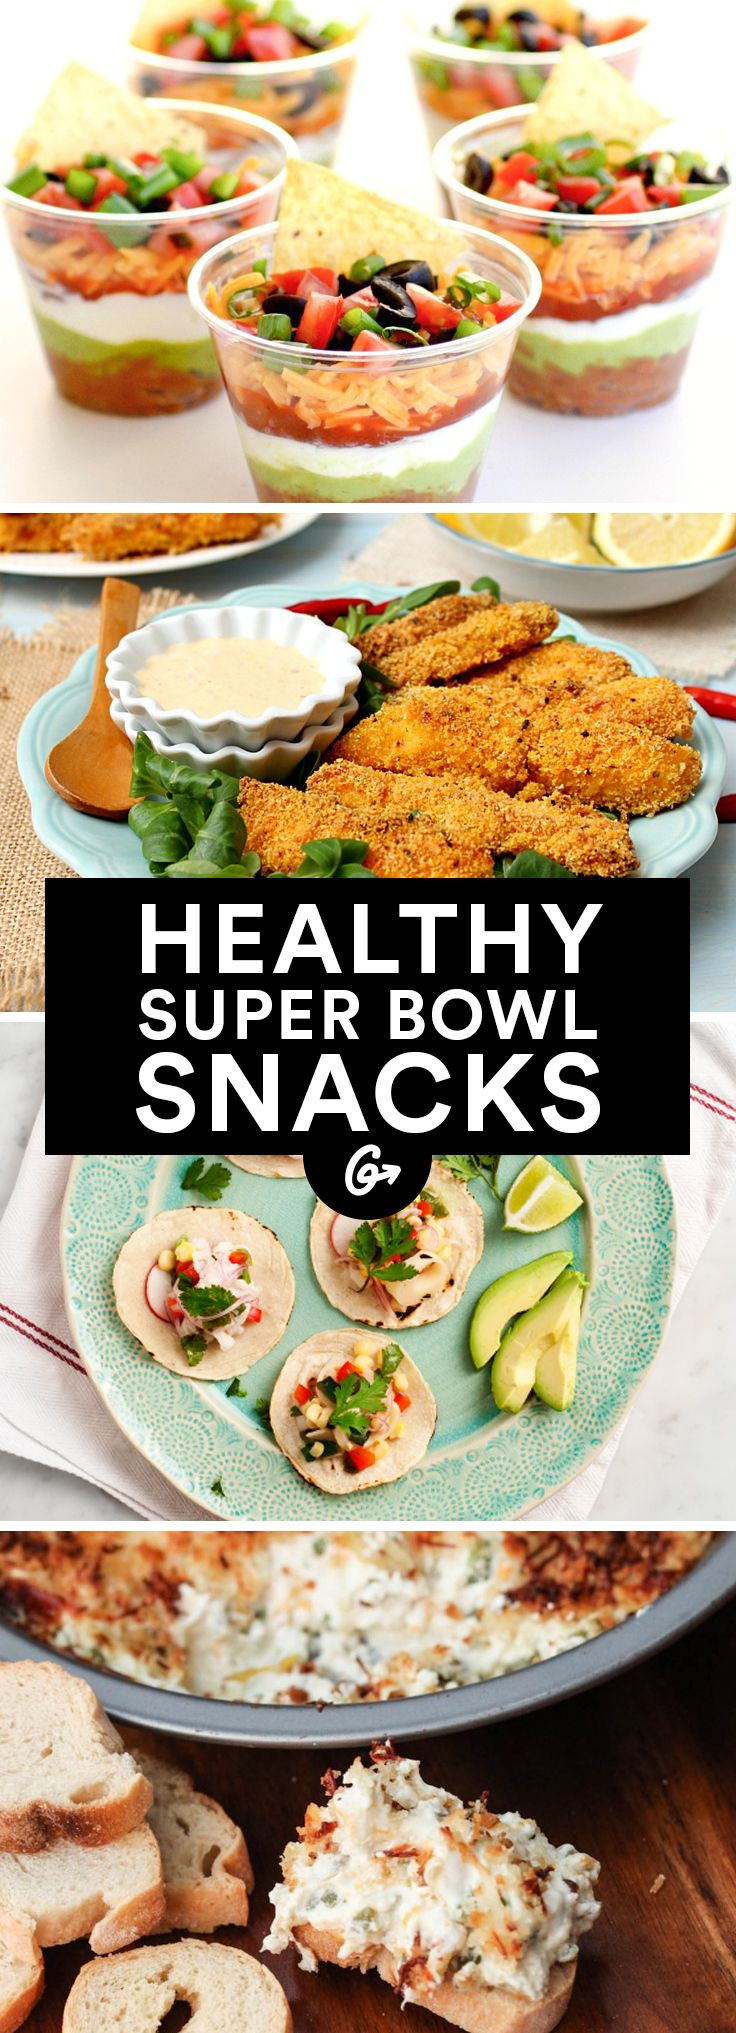 41 Guilt-Free Super Bowl Snacks #healthy #superbowl #recipes http://greatist.com/health/super-bowl-recipes-snacks